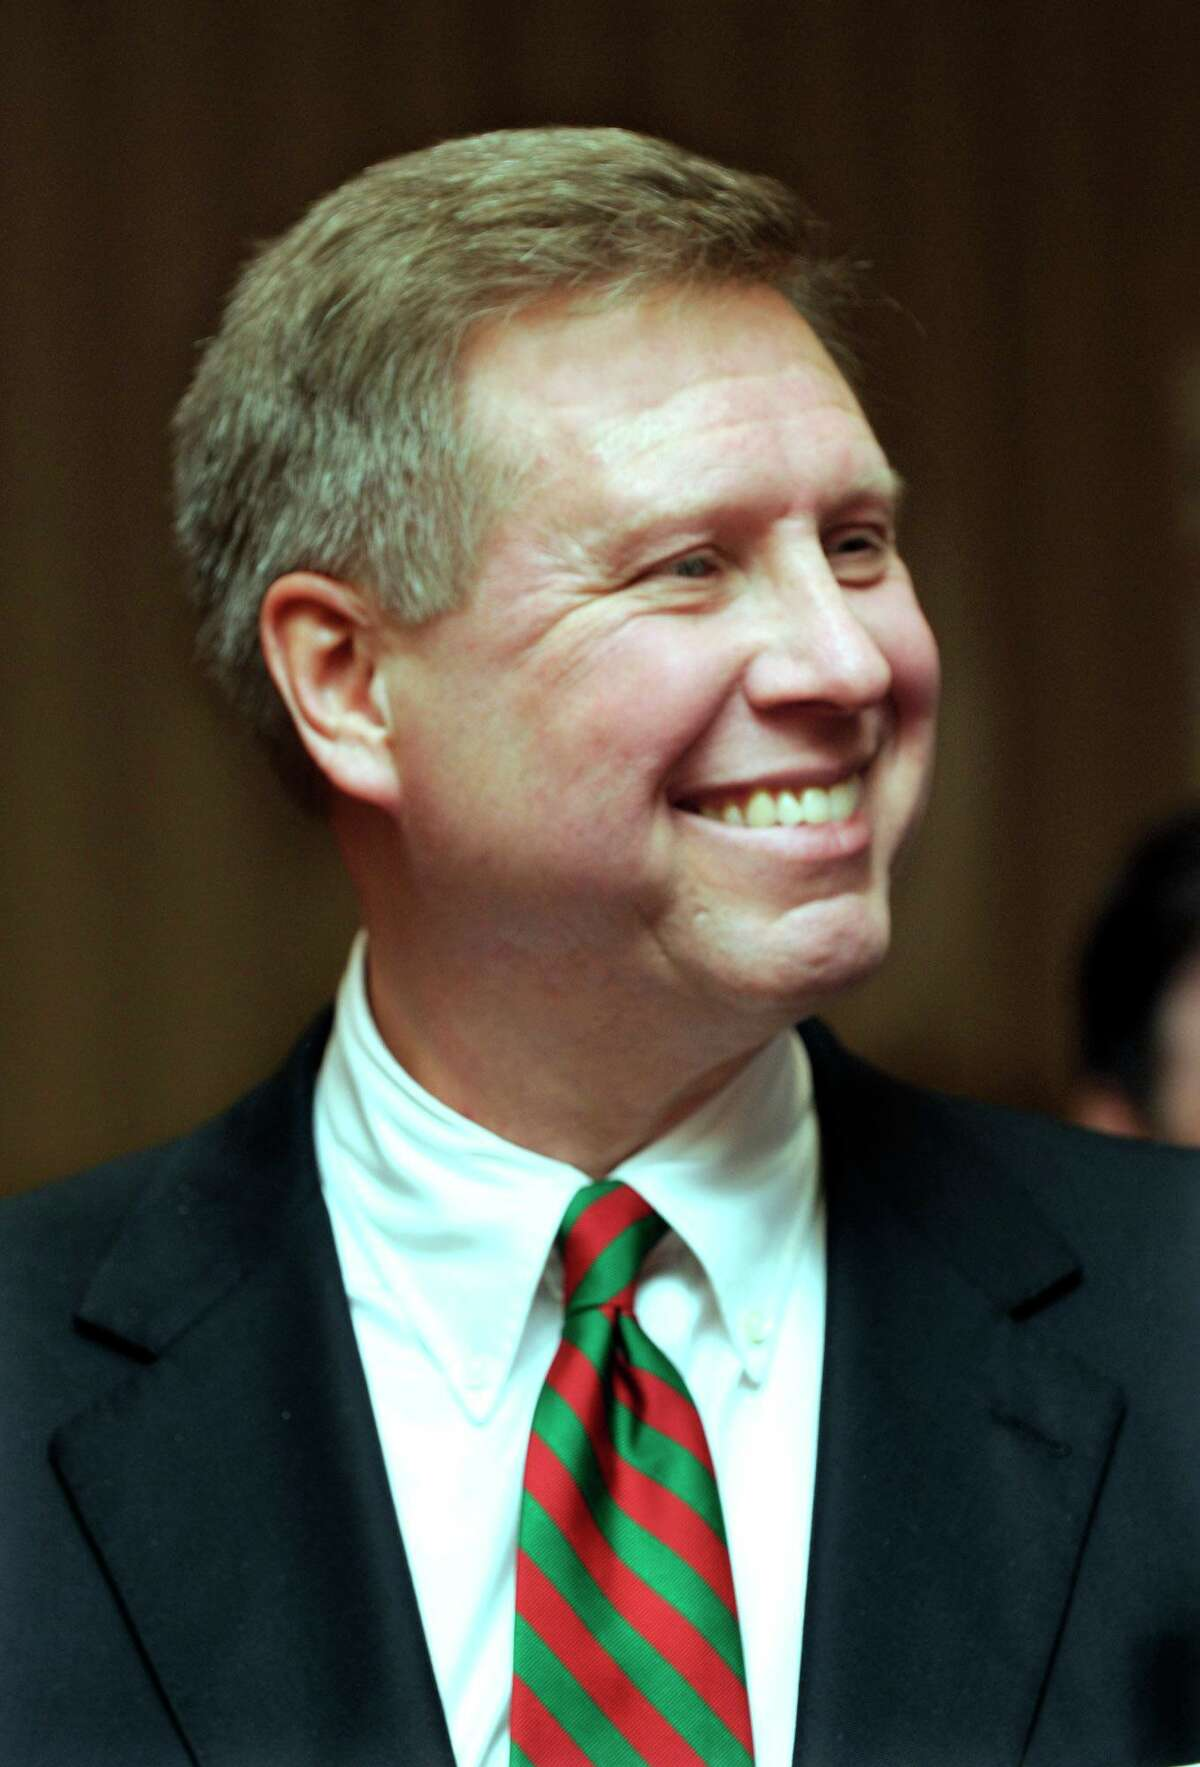 Bruce R. Tuomala has been named the new economic developement director for the city of Danbury. Photo taken Friday, Dec. 16, 2011.